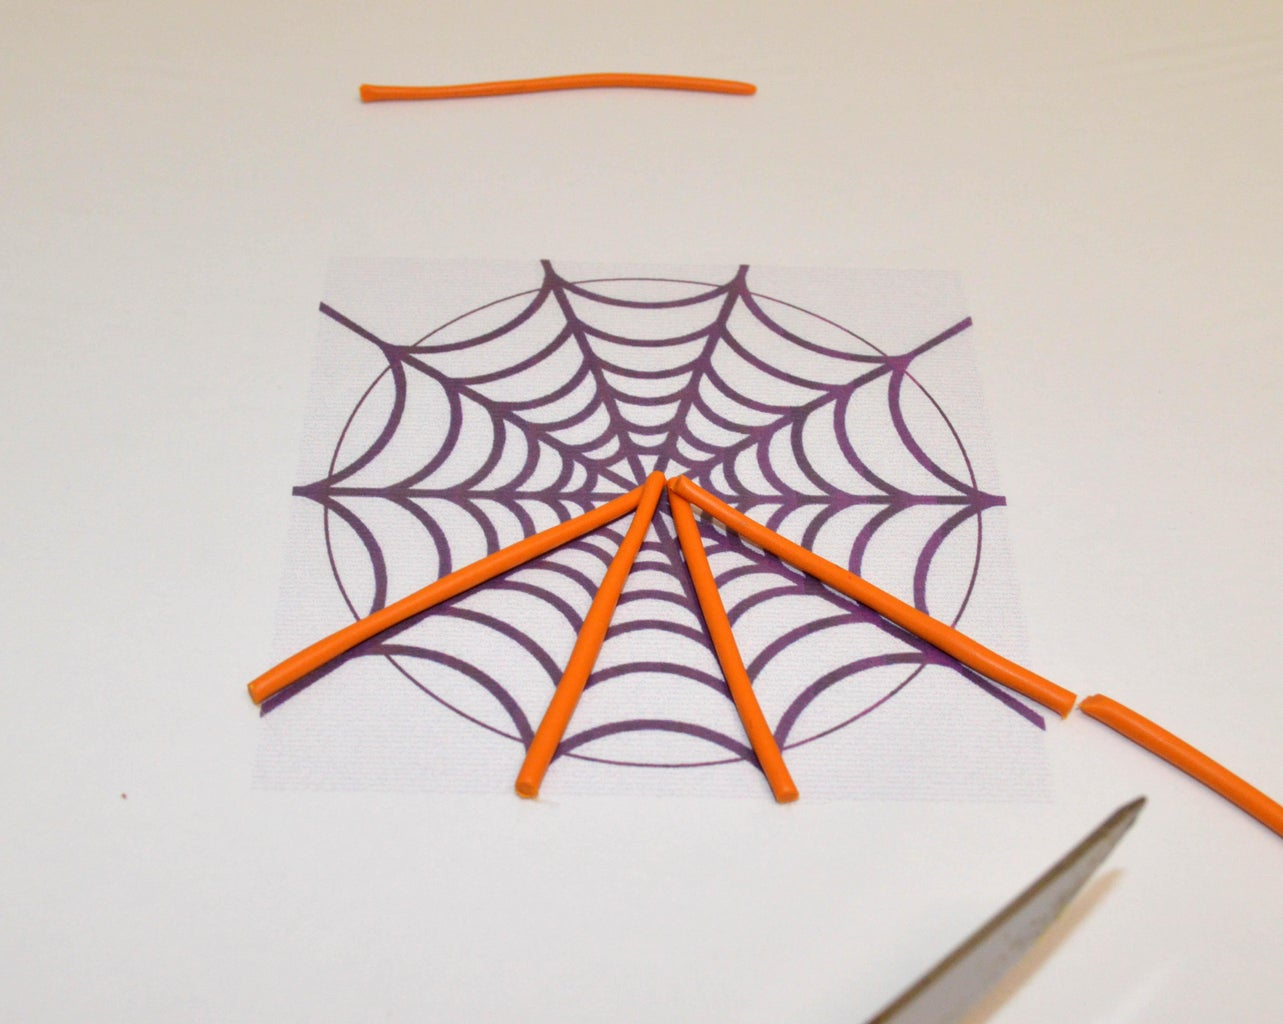 Sculpt a Spiderweb for the Back of the Jack O'lantern